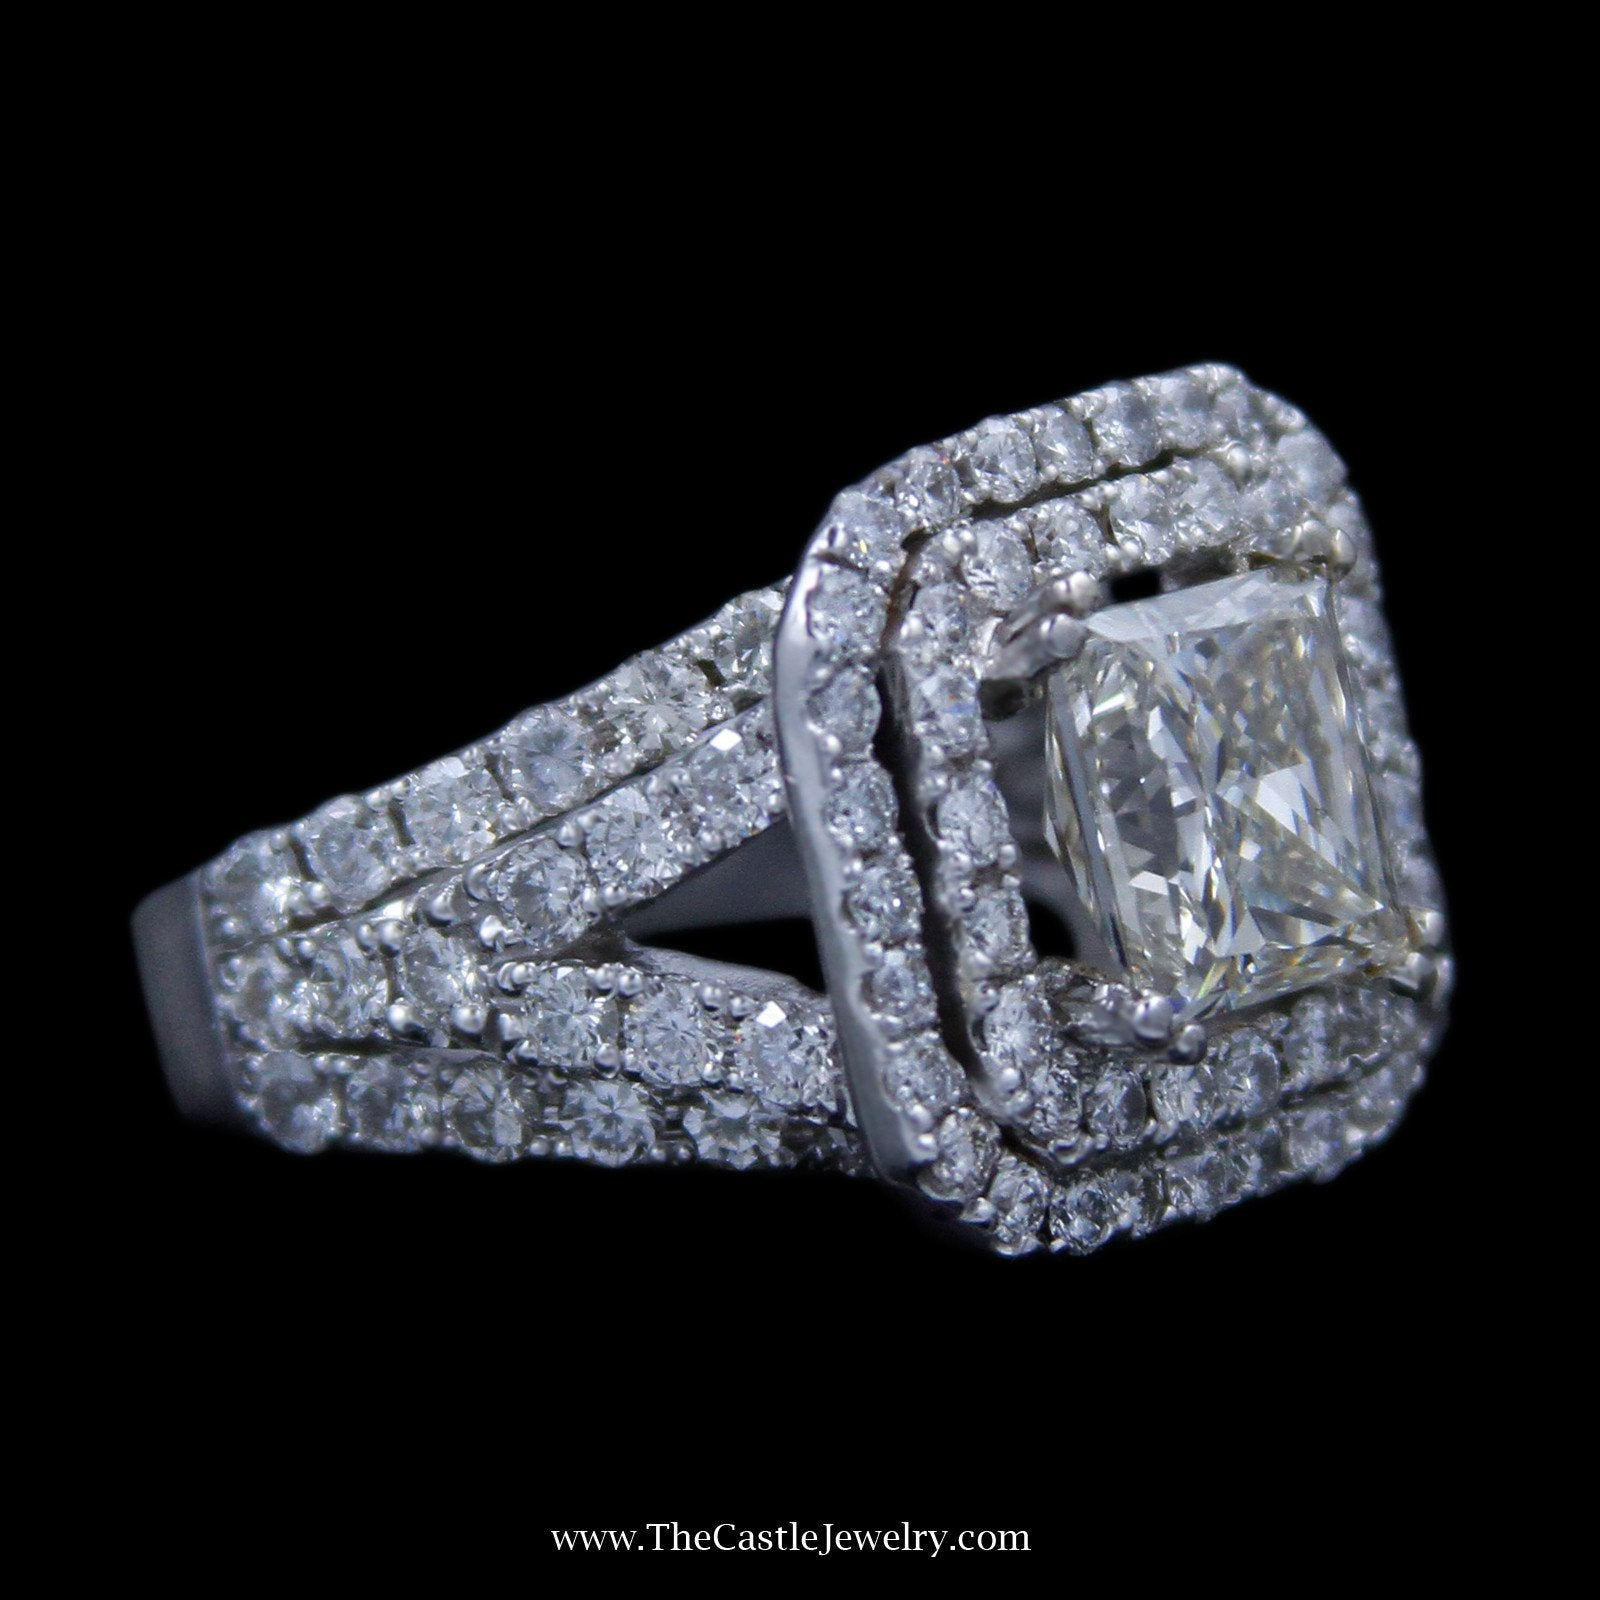 Princess Cut 2.98ct Diamond Engagement Ring w/ Double Round Diamond Bezel in 18k White Gold-2